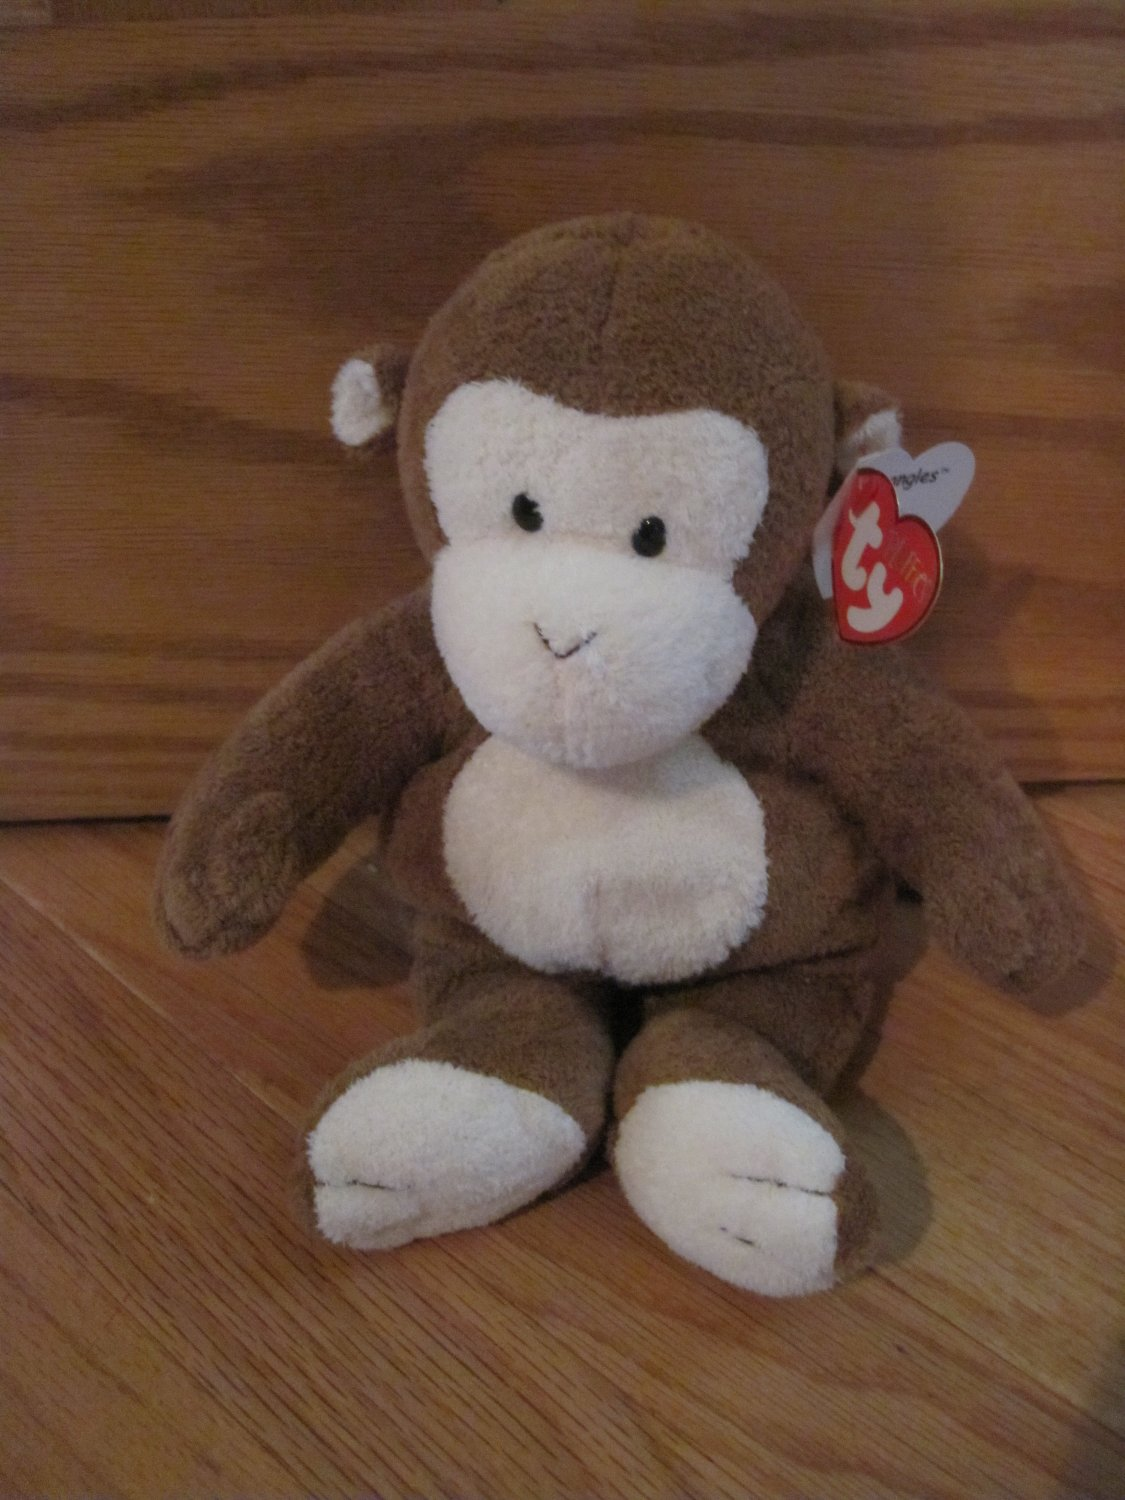 Ty Pluffies Plush Brown & Cream Monkey Named Dangles Tylux 2002 With Tags